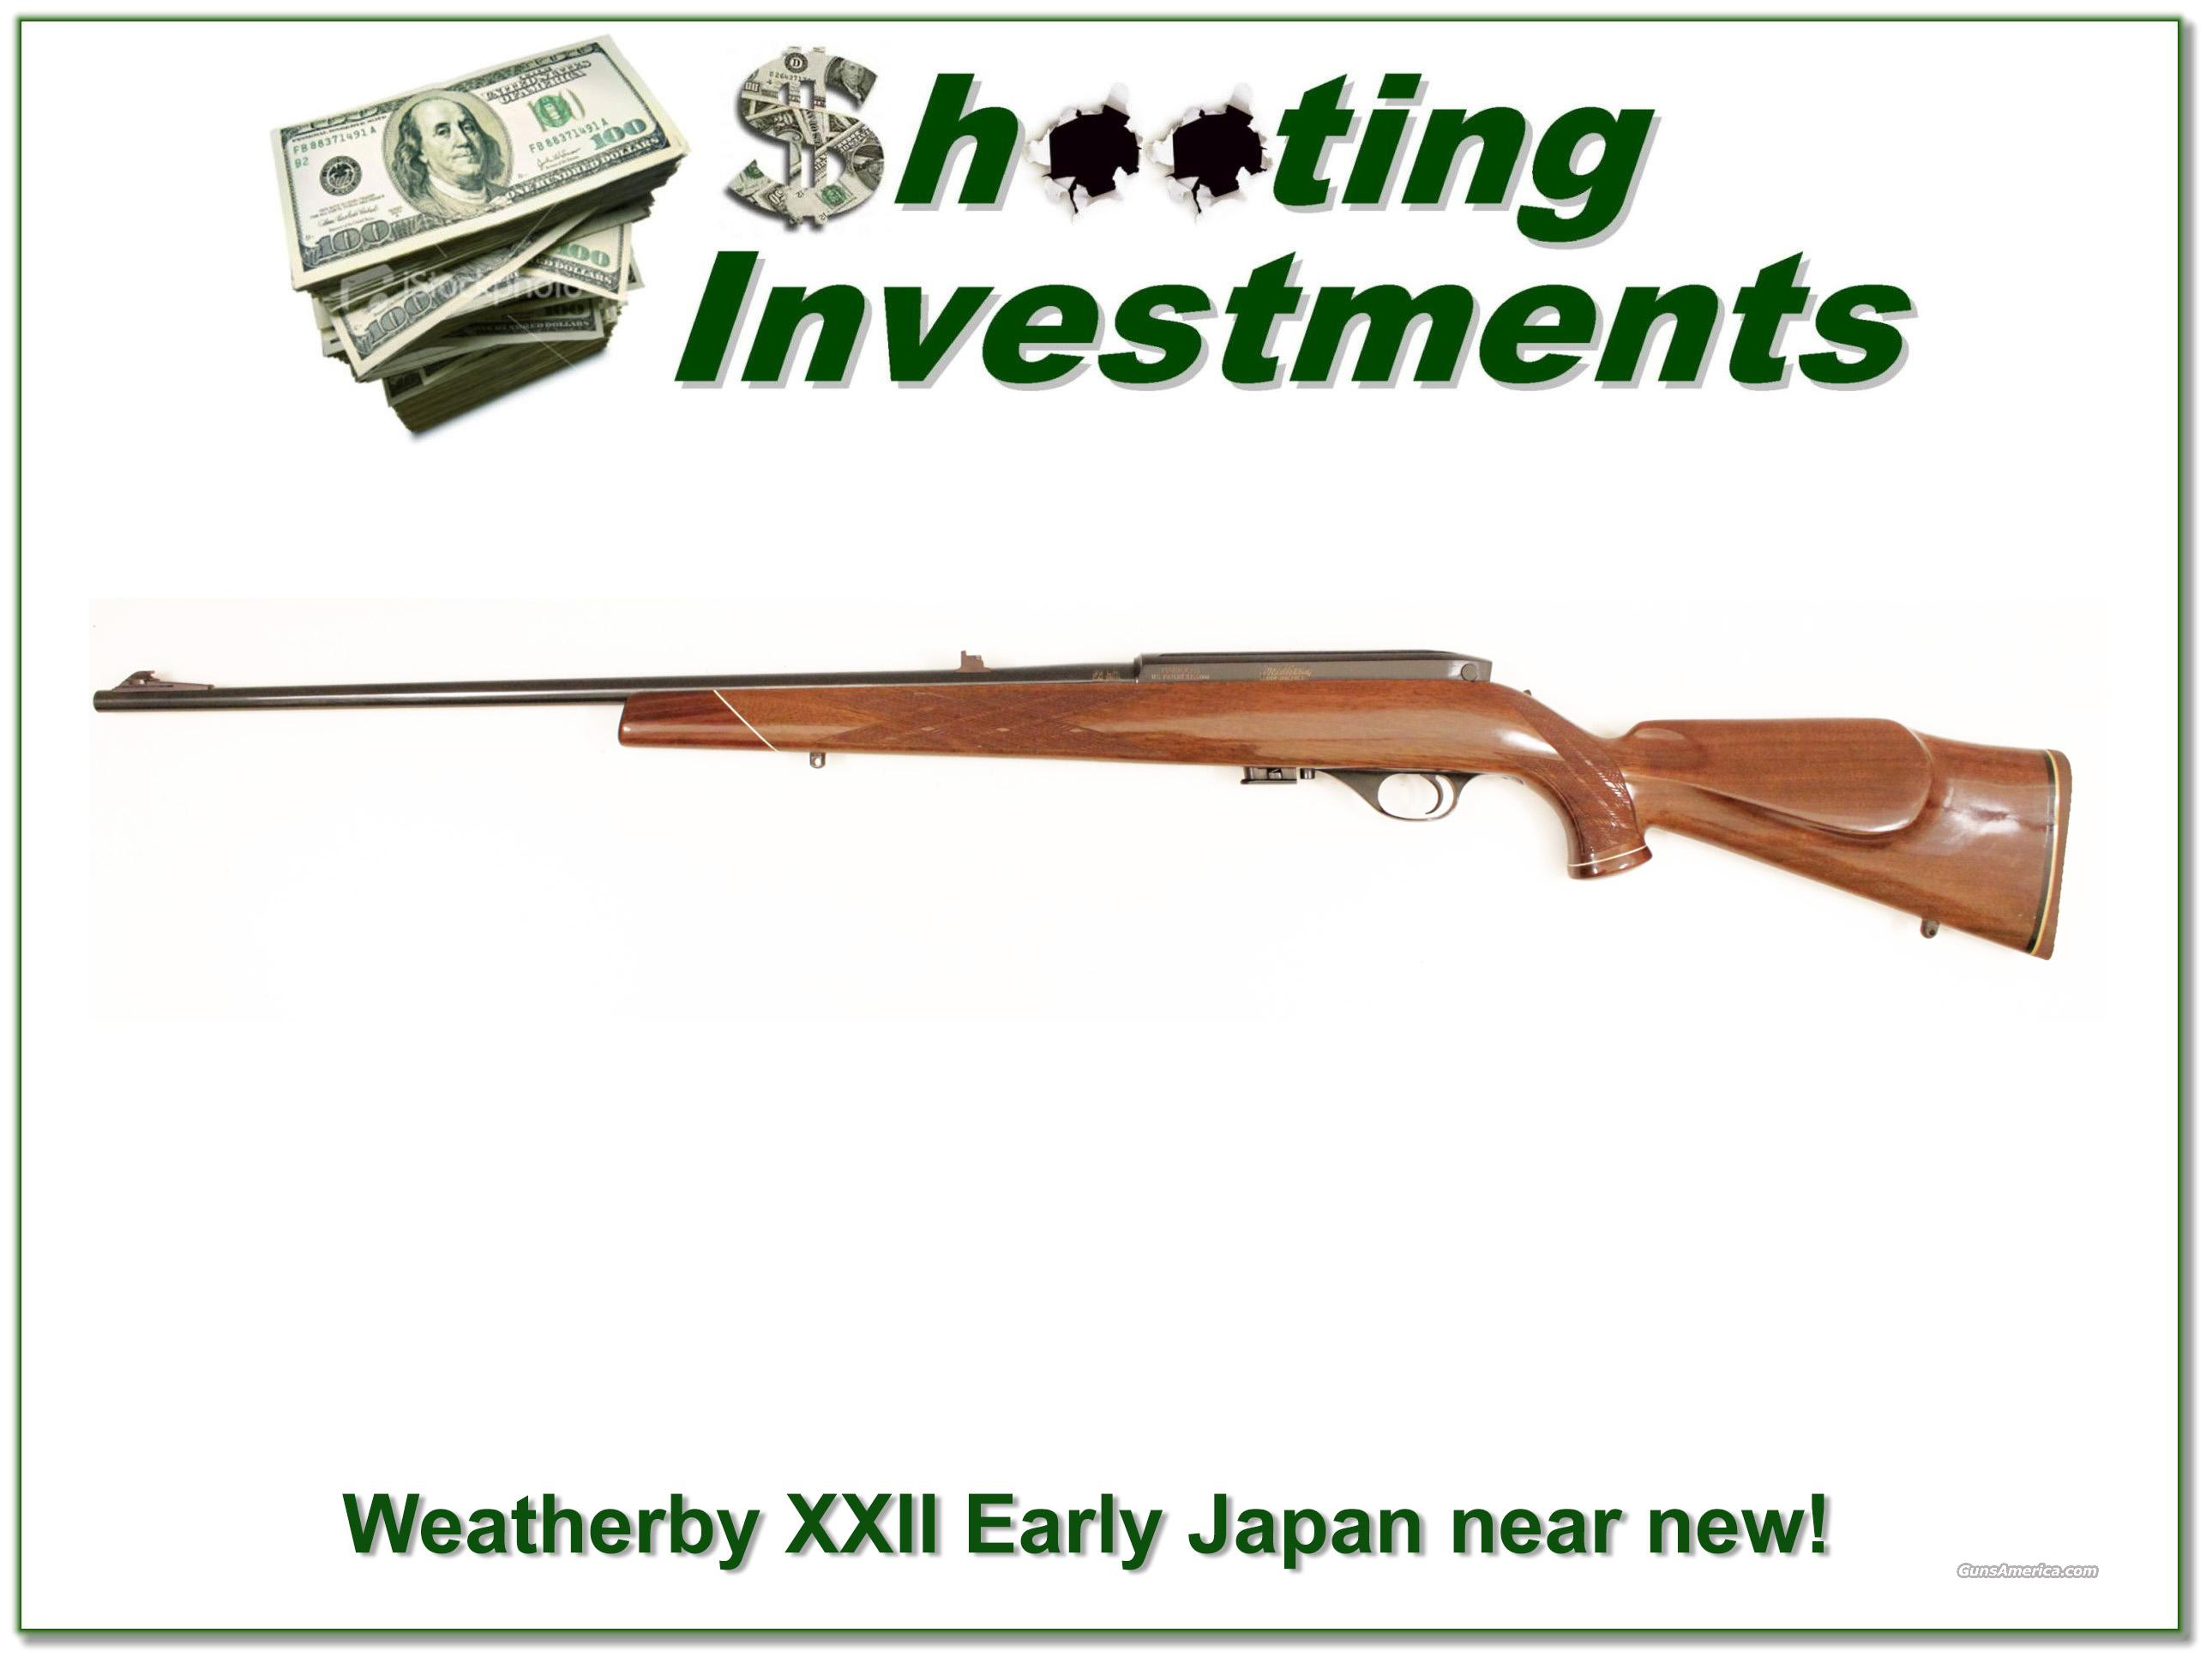 Weatherby Mark XXII 22 rimfire early Japan  Guns > Rifles > Weatherby Rifles > Sporting